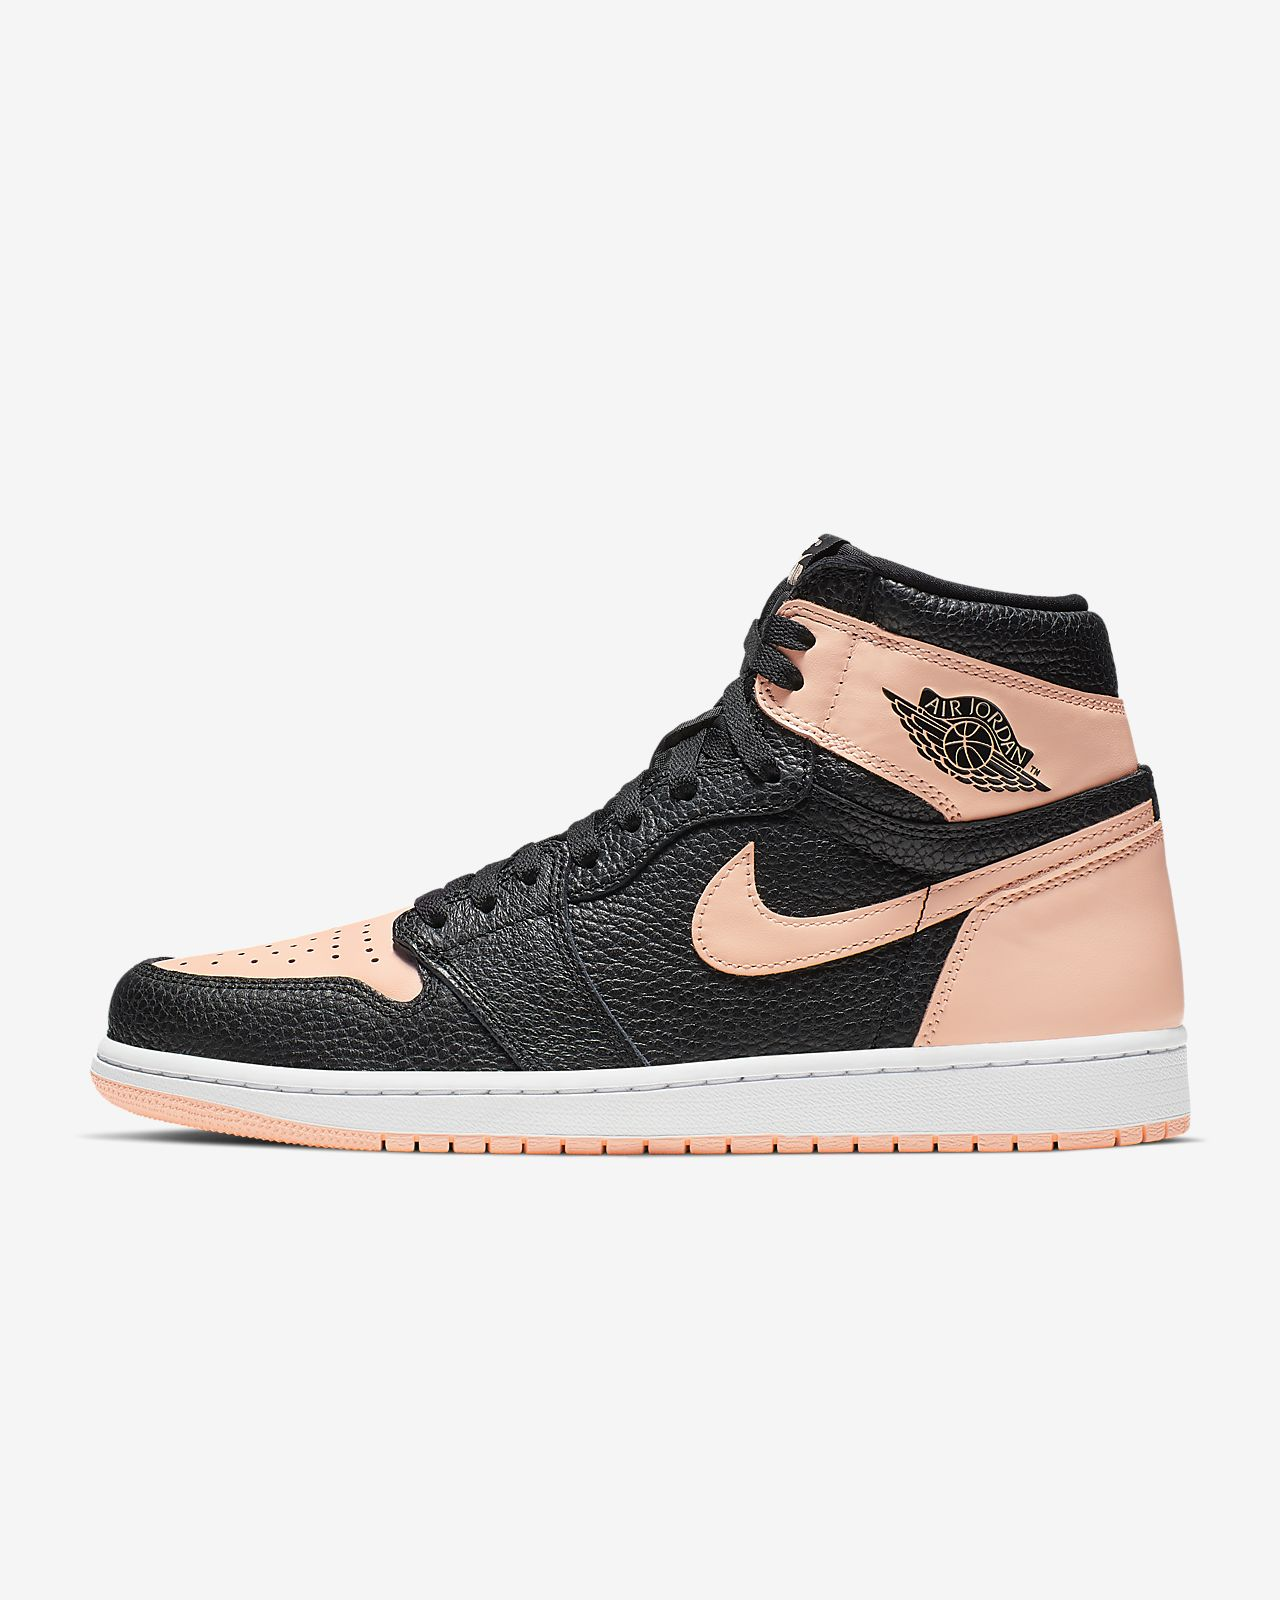 ec19147b391e8 Air Jordan 1 Retro High OG Shoe. Nike.com